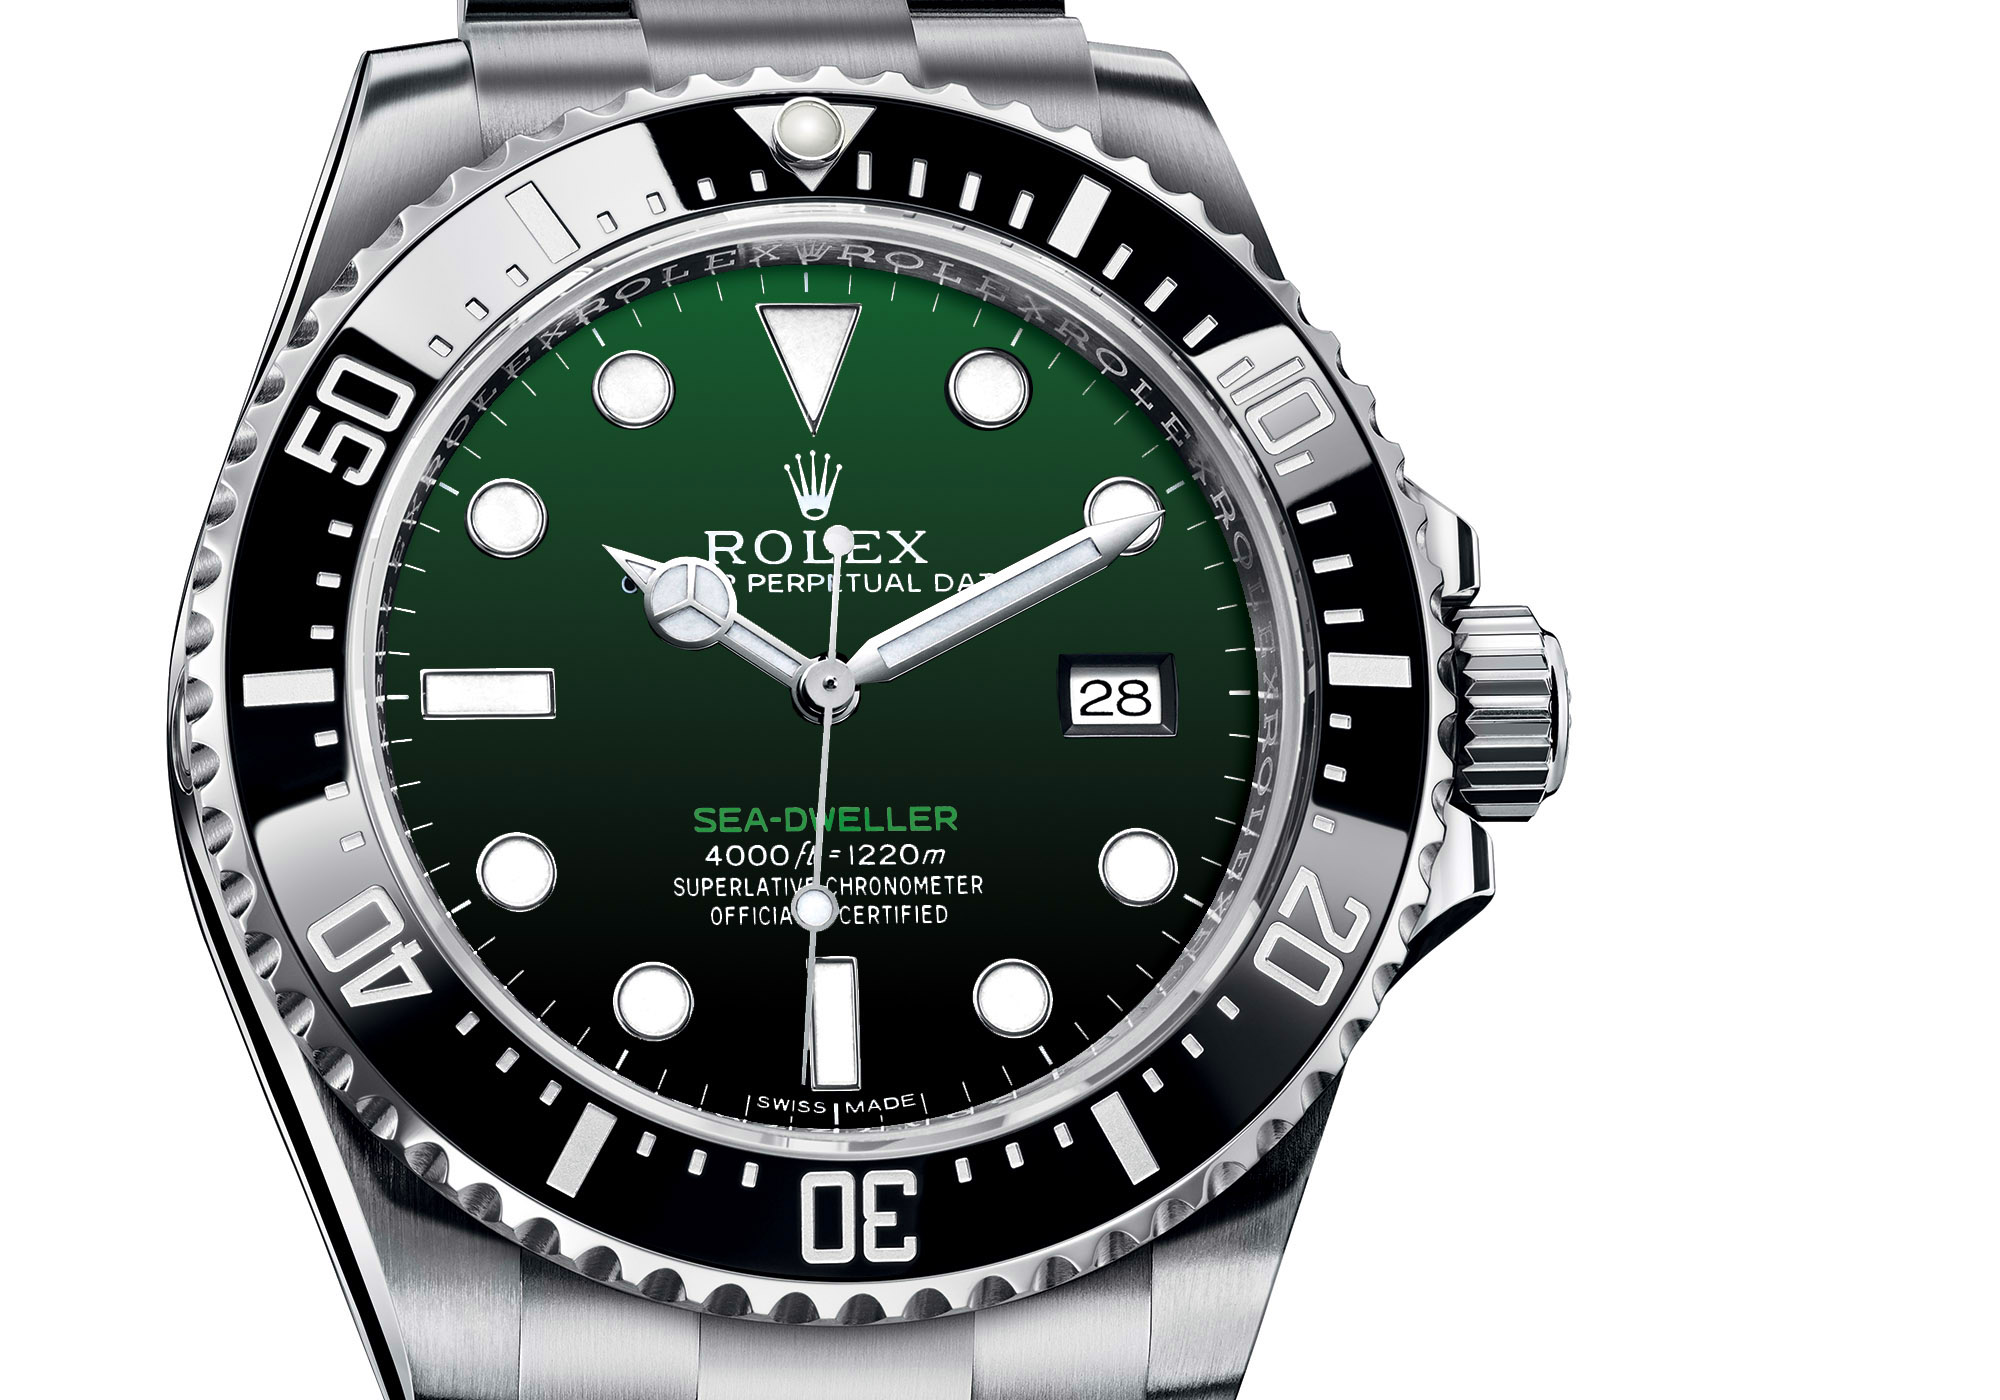 Rolex Sea Dweller 50th anniversary Gradient Green Dial - Rolex Baselworld 2017 - Rolex Predictions 2017